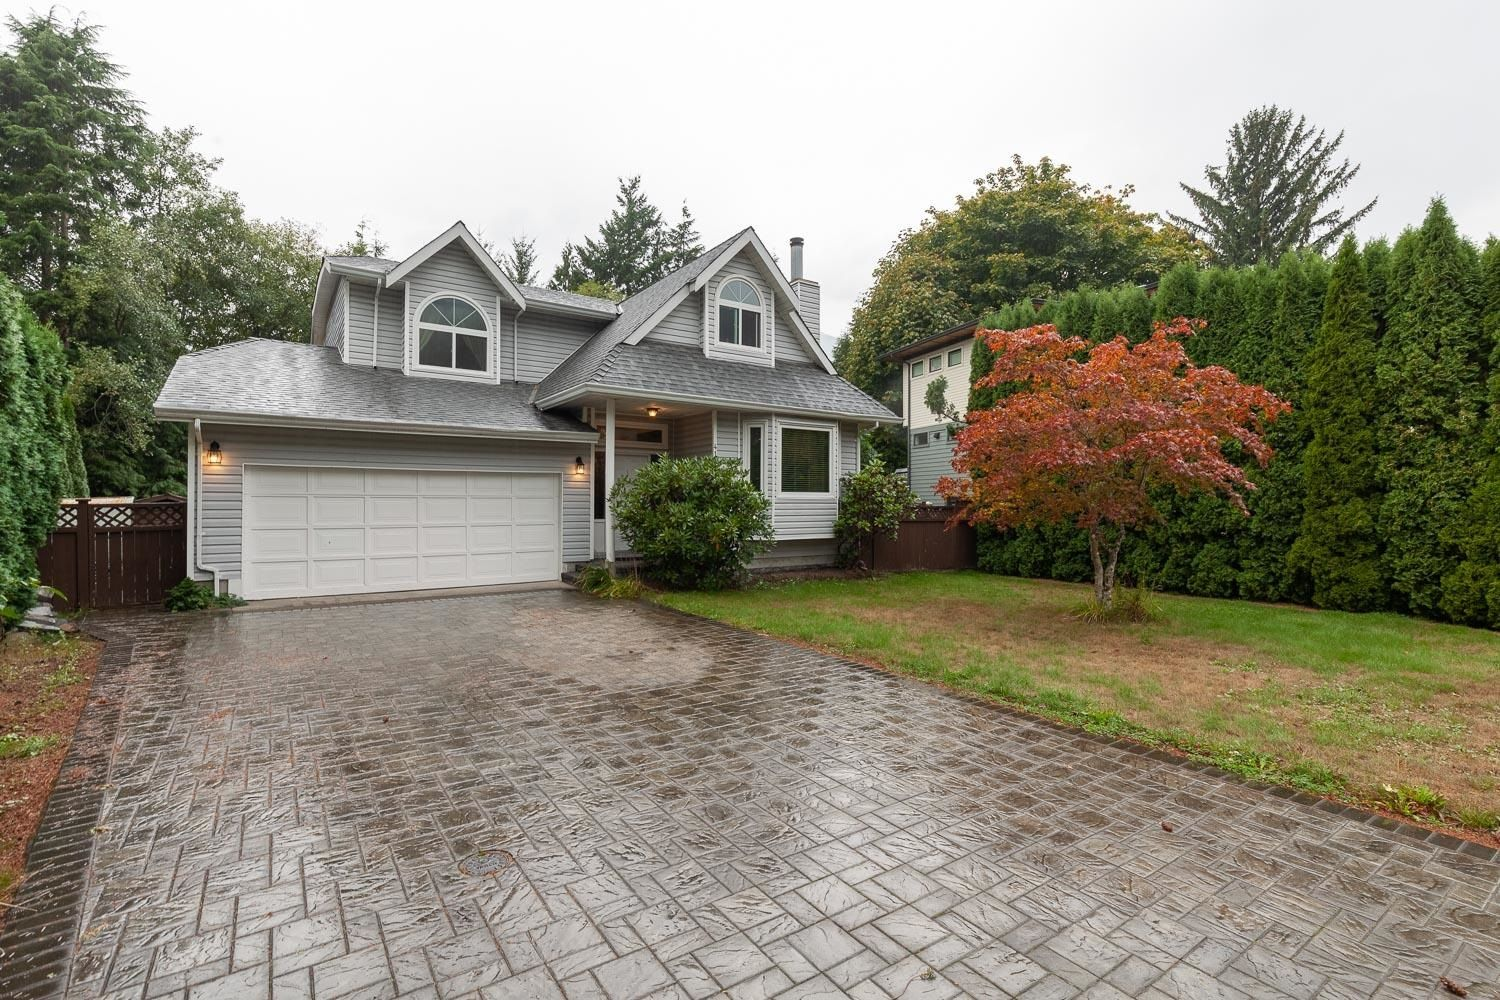 """Main Photo: 41361 KINGSWOOD Road in Squamish: Brackendale House for sale in """"BRACKENDALE"""" : MLS®# R2618512"""